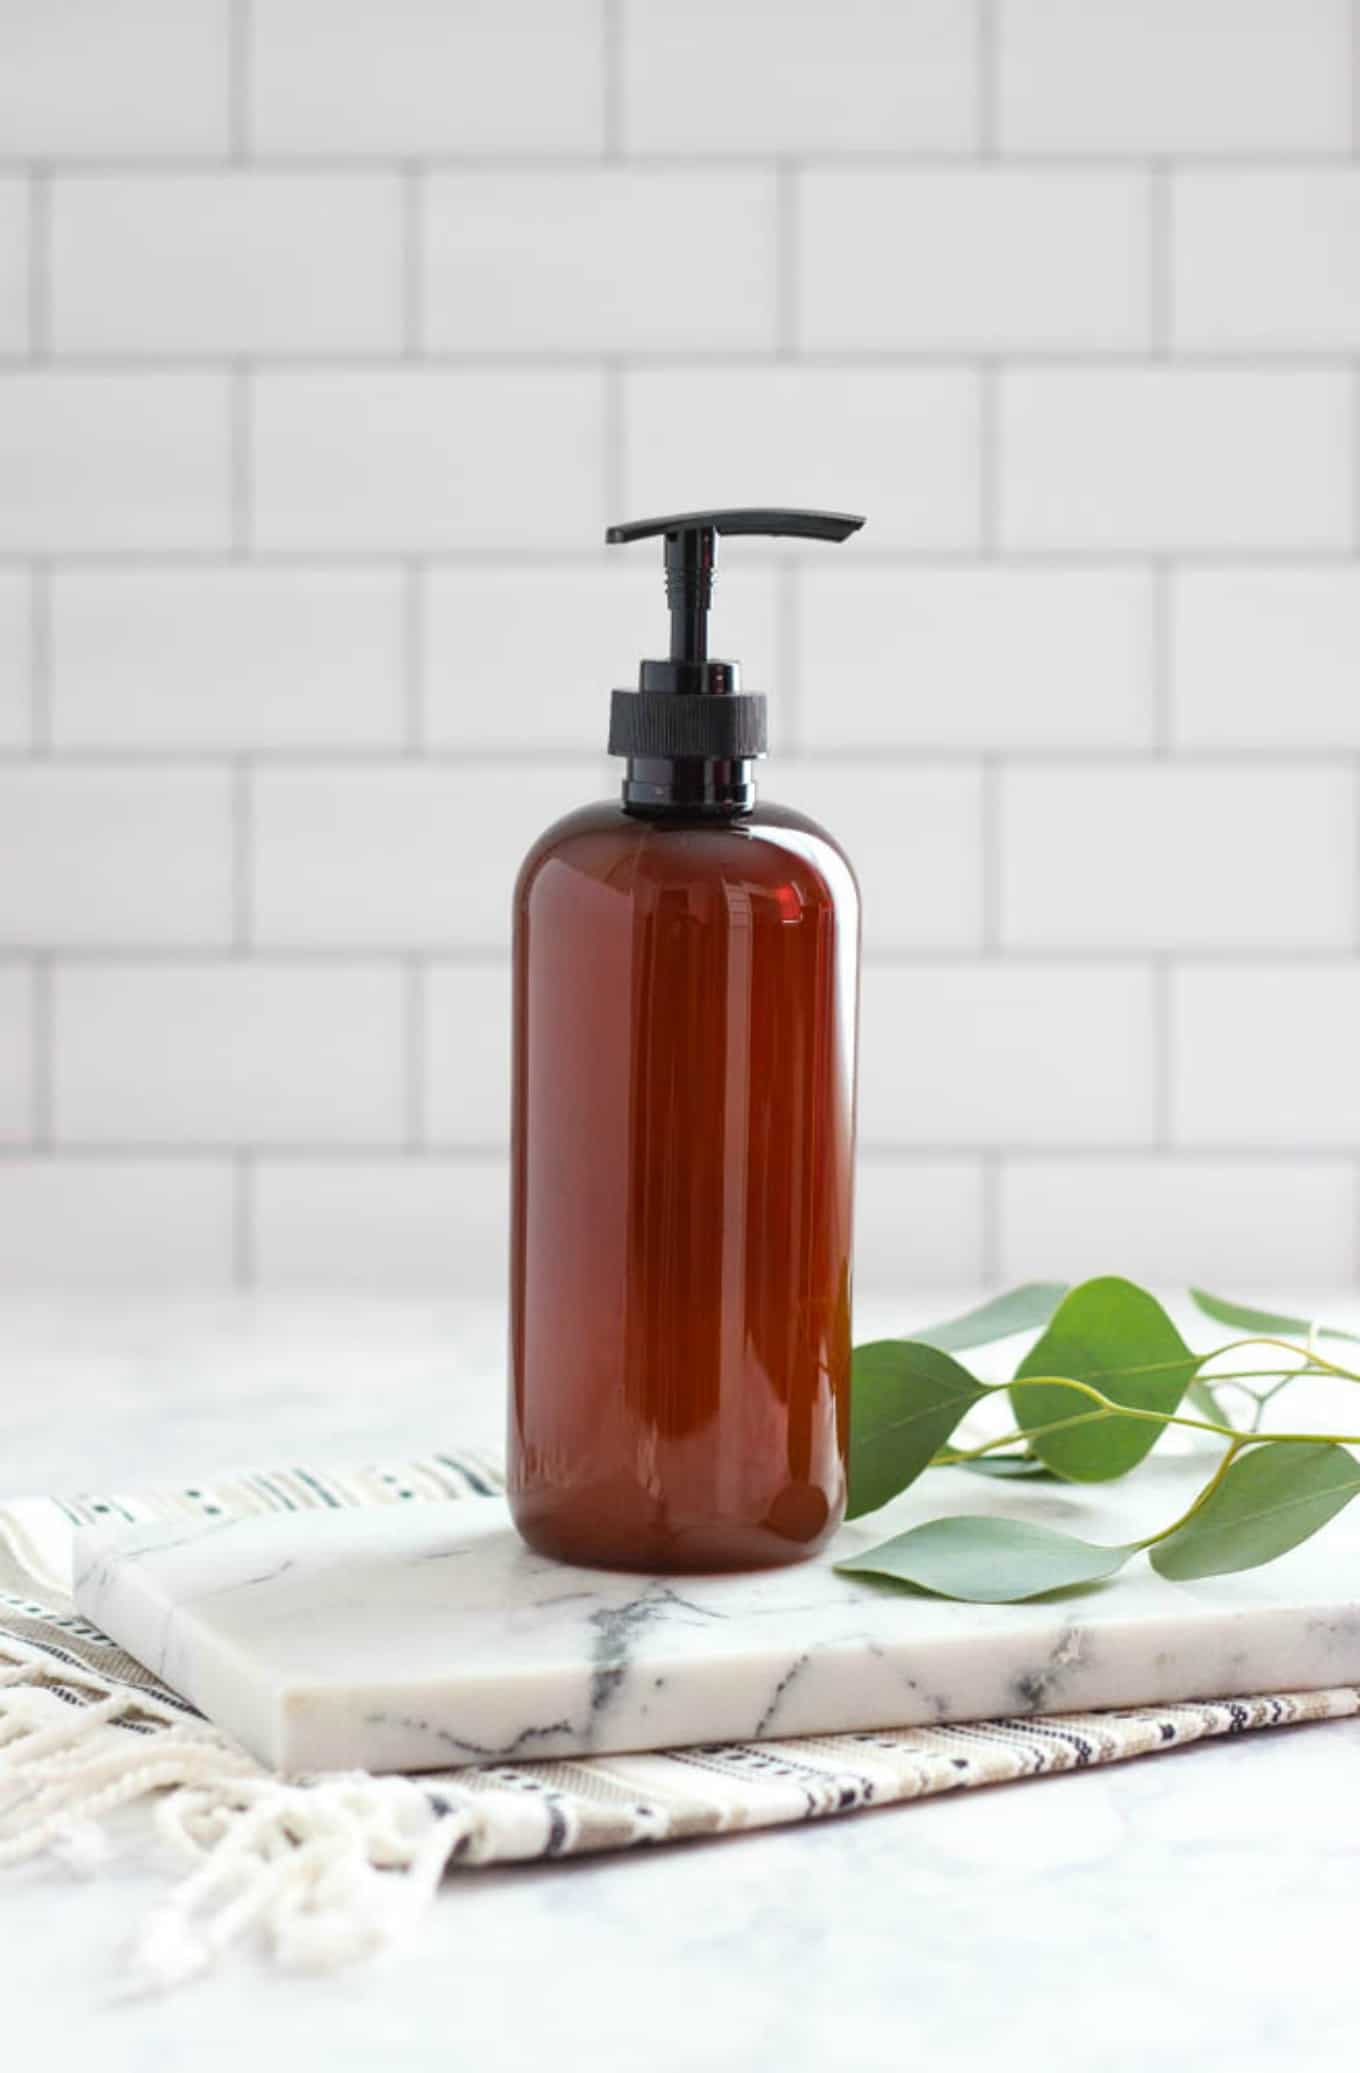 Money Saving Castile Soap Recipe is an all-natural, safe liquid hand soap that cleanses and soothes. #diy #soap #homemandsoap #soaprecipe #healthandbeauty